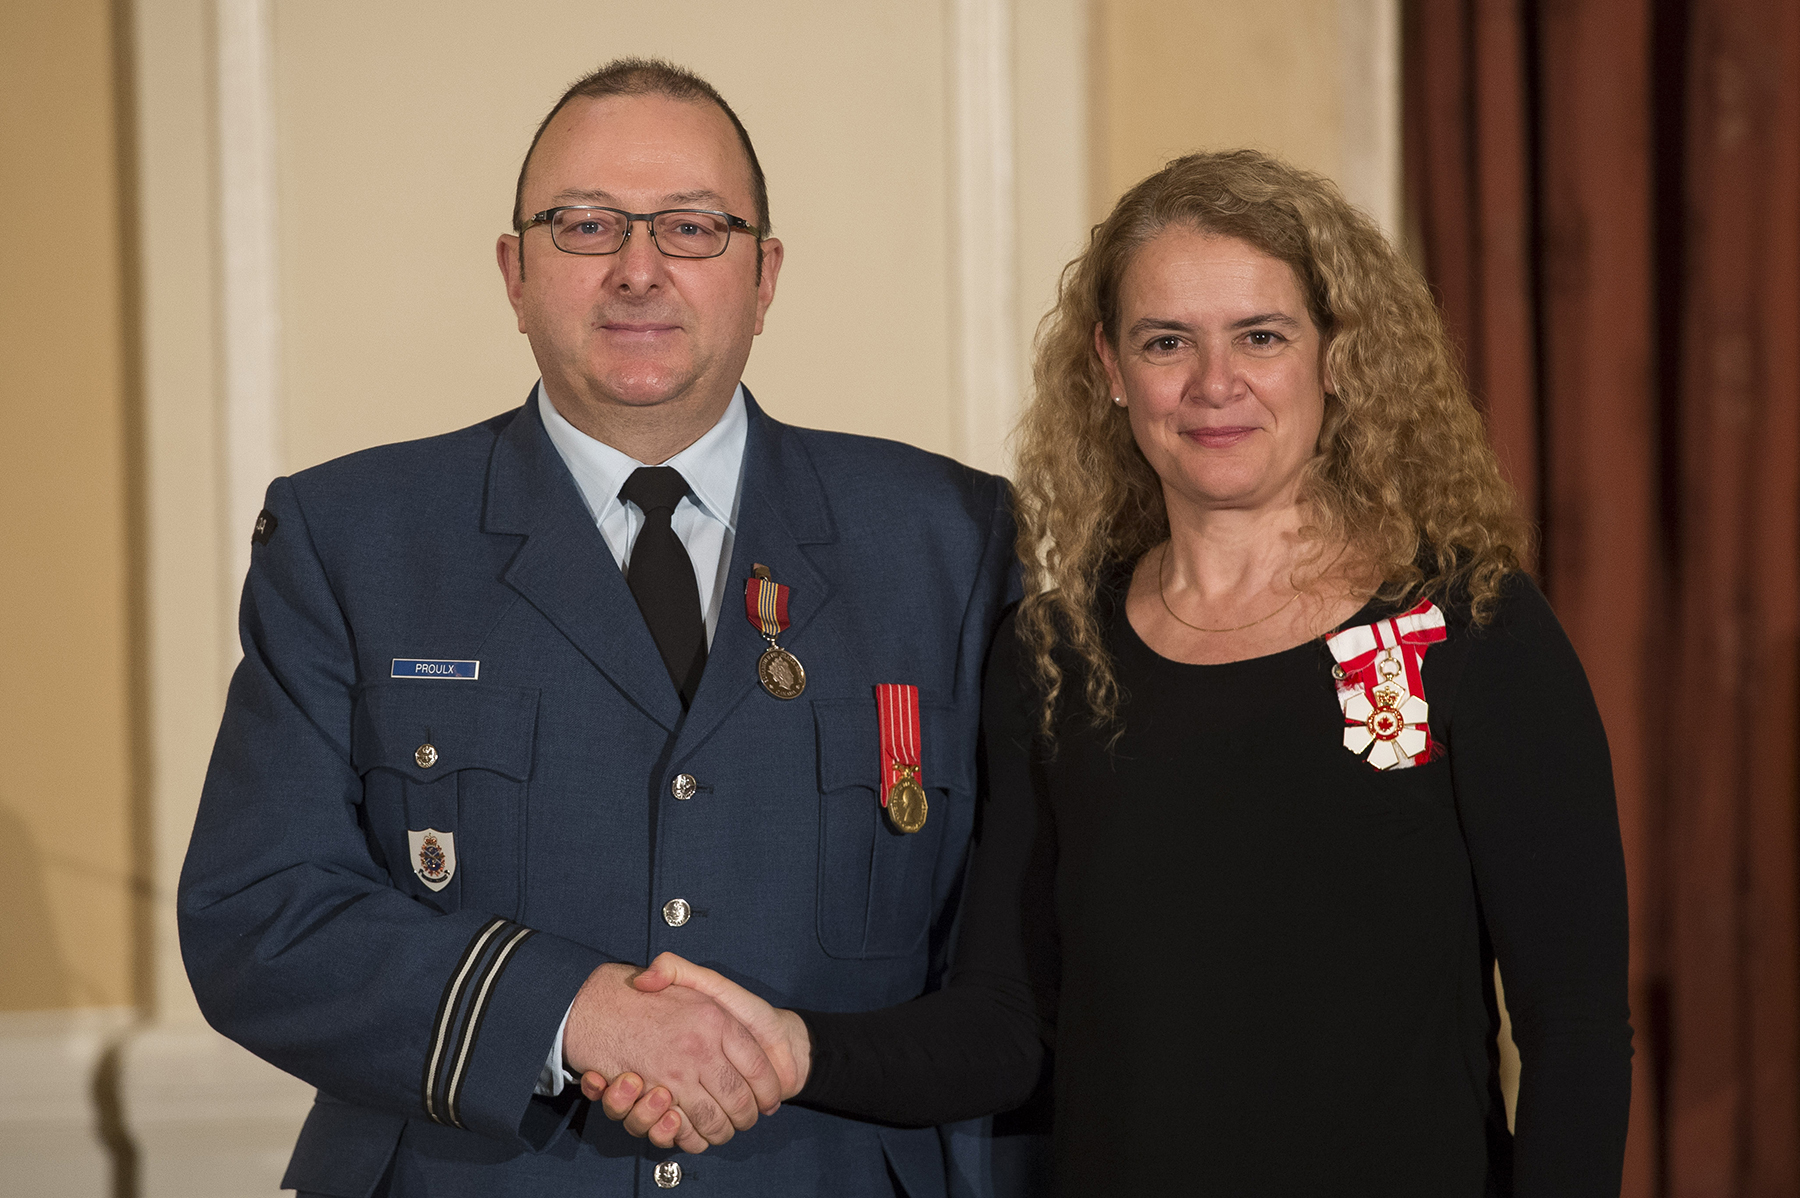 Captain René Proulx receives the Sovereign's Medal for Volunteers from Governor General and Commander-in-Chief of Canada Julie Payette on February 20, 2018. PHOTO: Master Corporal Vincent Carbonneau, GG02-2018-0062-066